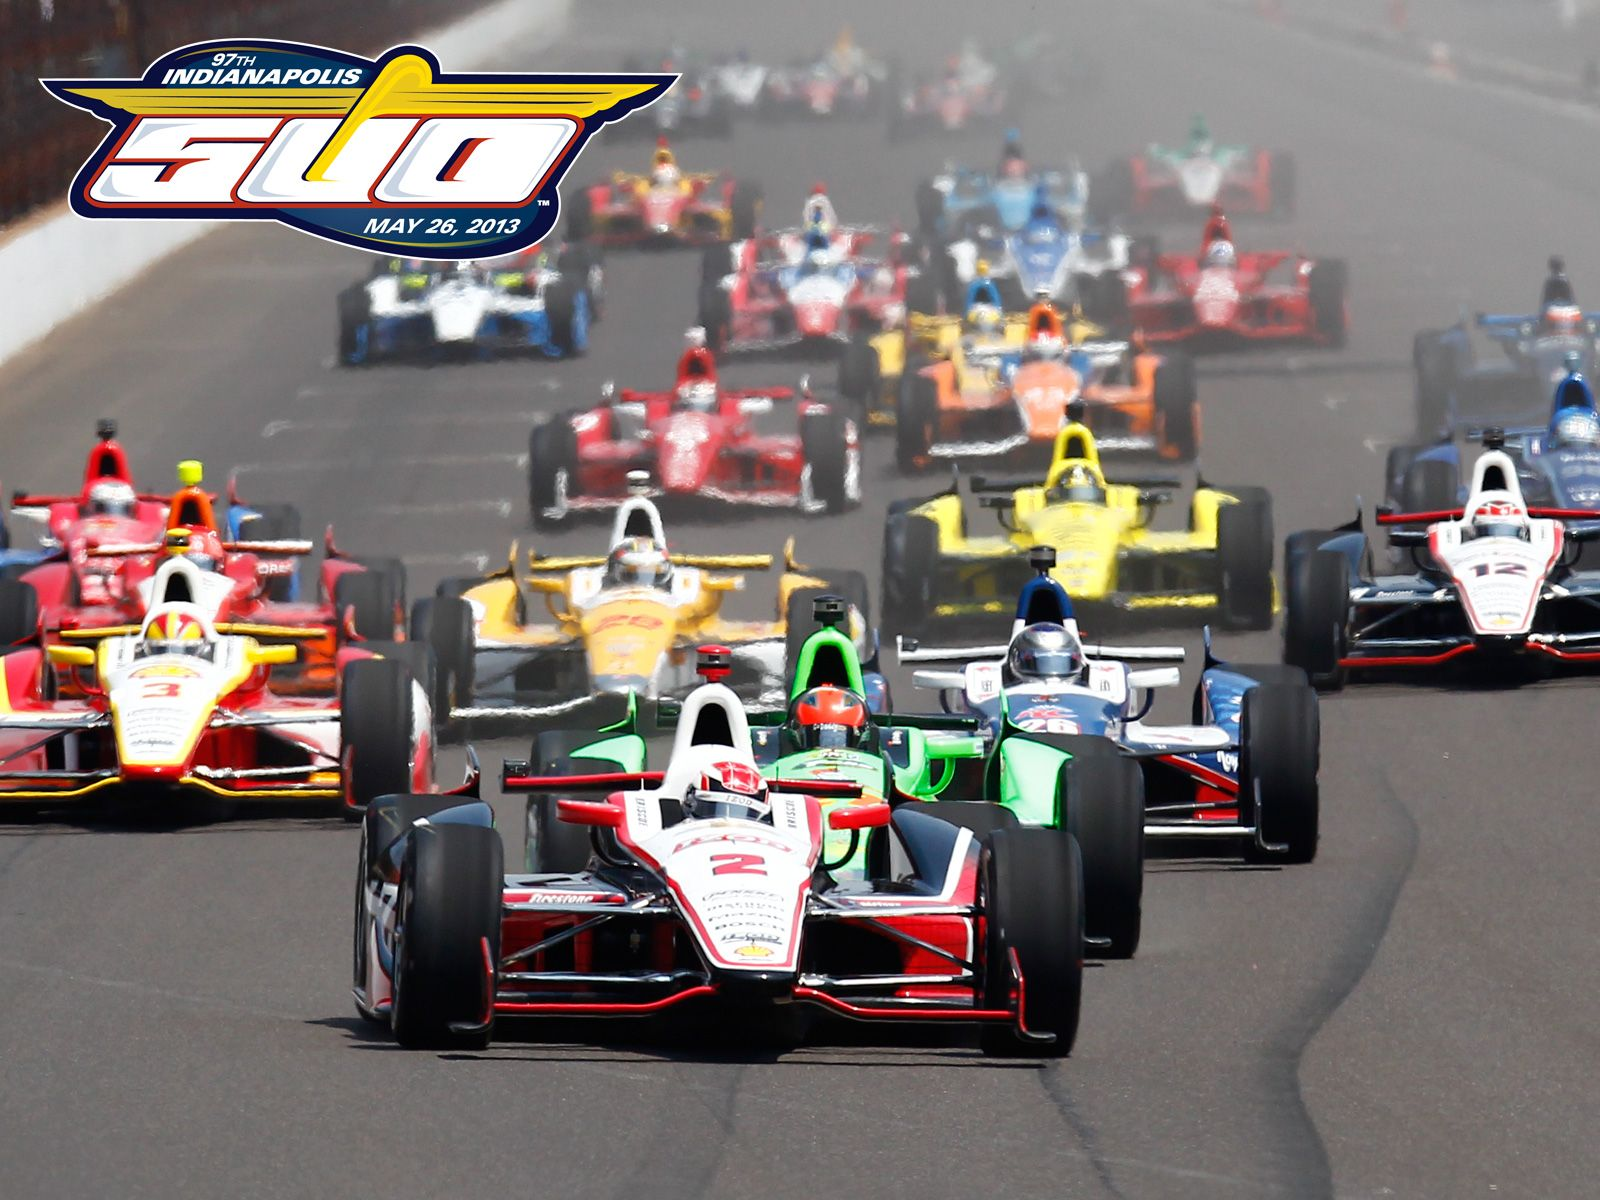 Indy 500 photos indy 500 wallpapers indianapolis 500 indy 500 photos indy 500 wallpapers indianapolis 500 indianapolis motor speedway voltagebd Images